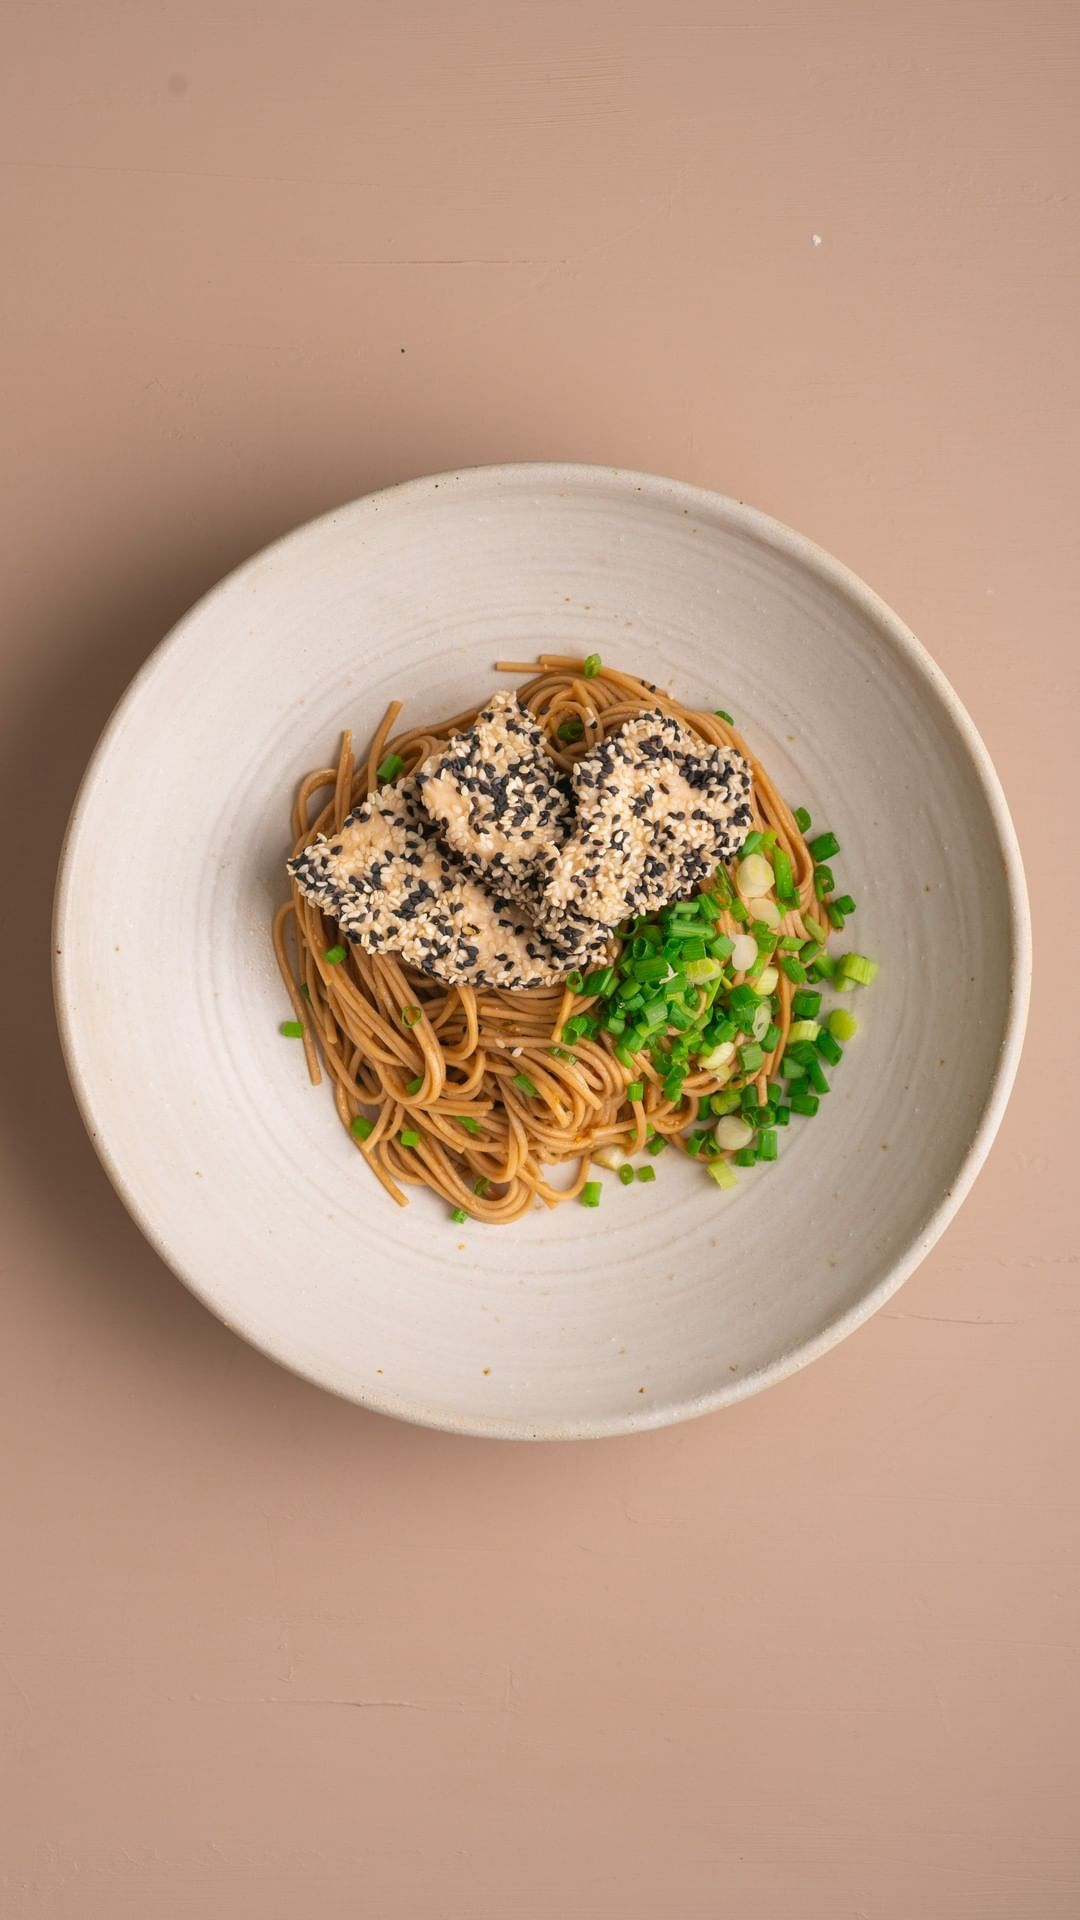 Marion S Kitchen On Instagram With Soba Noodles Get The Recipe Marionskitchen Com Type Sesame Chicken Soba I Soba Noodles Asian Recipes Recipes